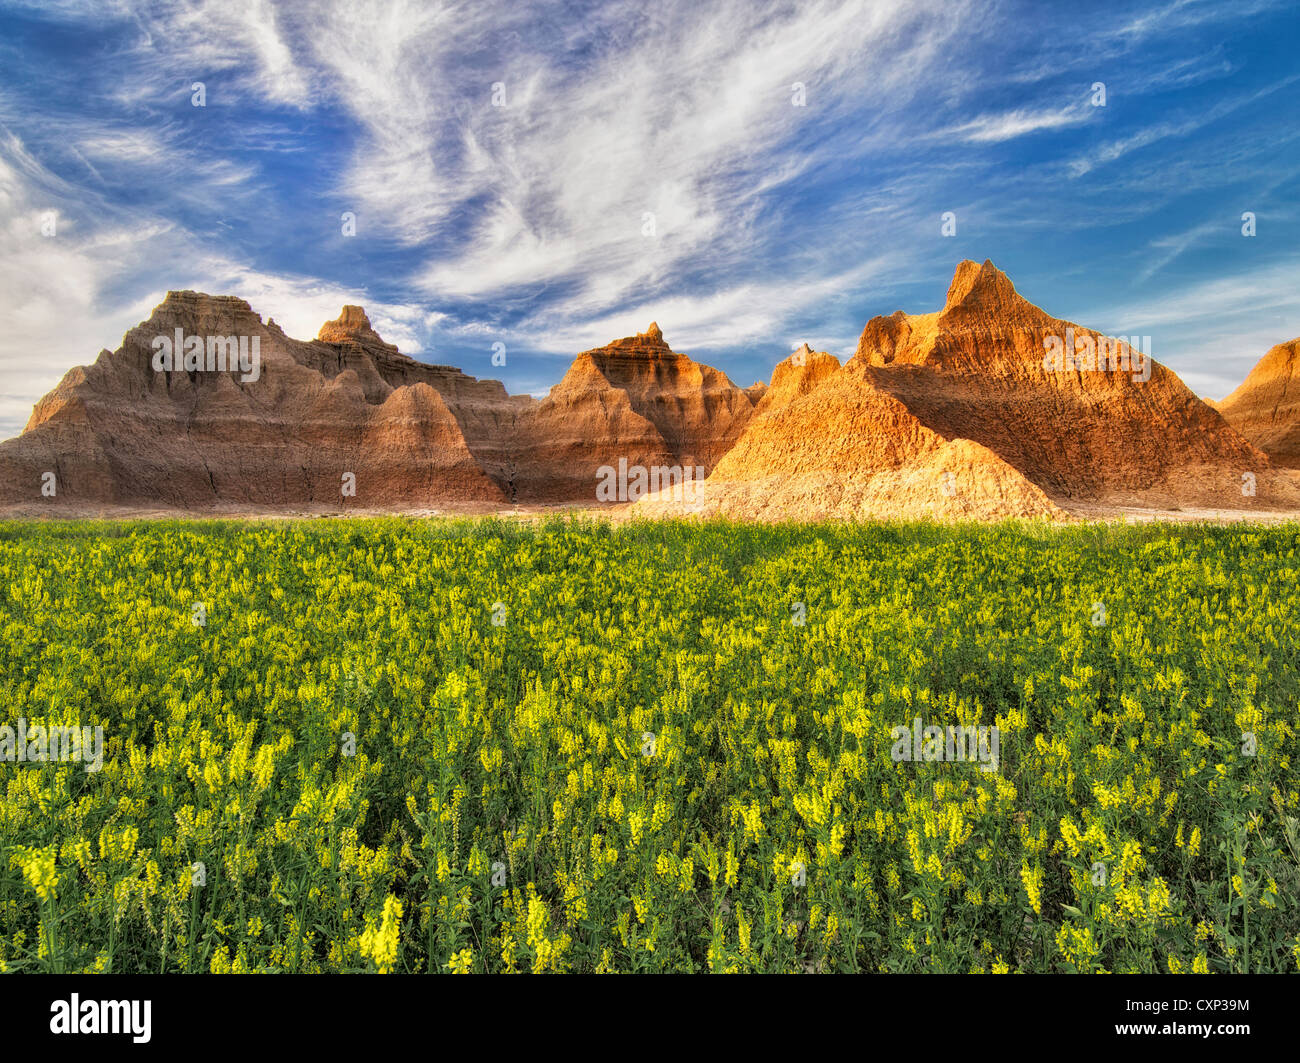 Mélilot jaune et de formations rocheuses. Badlands National Park (Dakota du Sud). Photo Stock